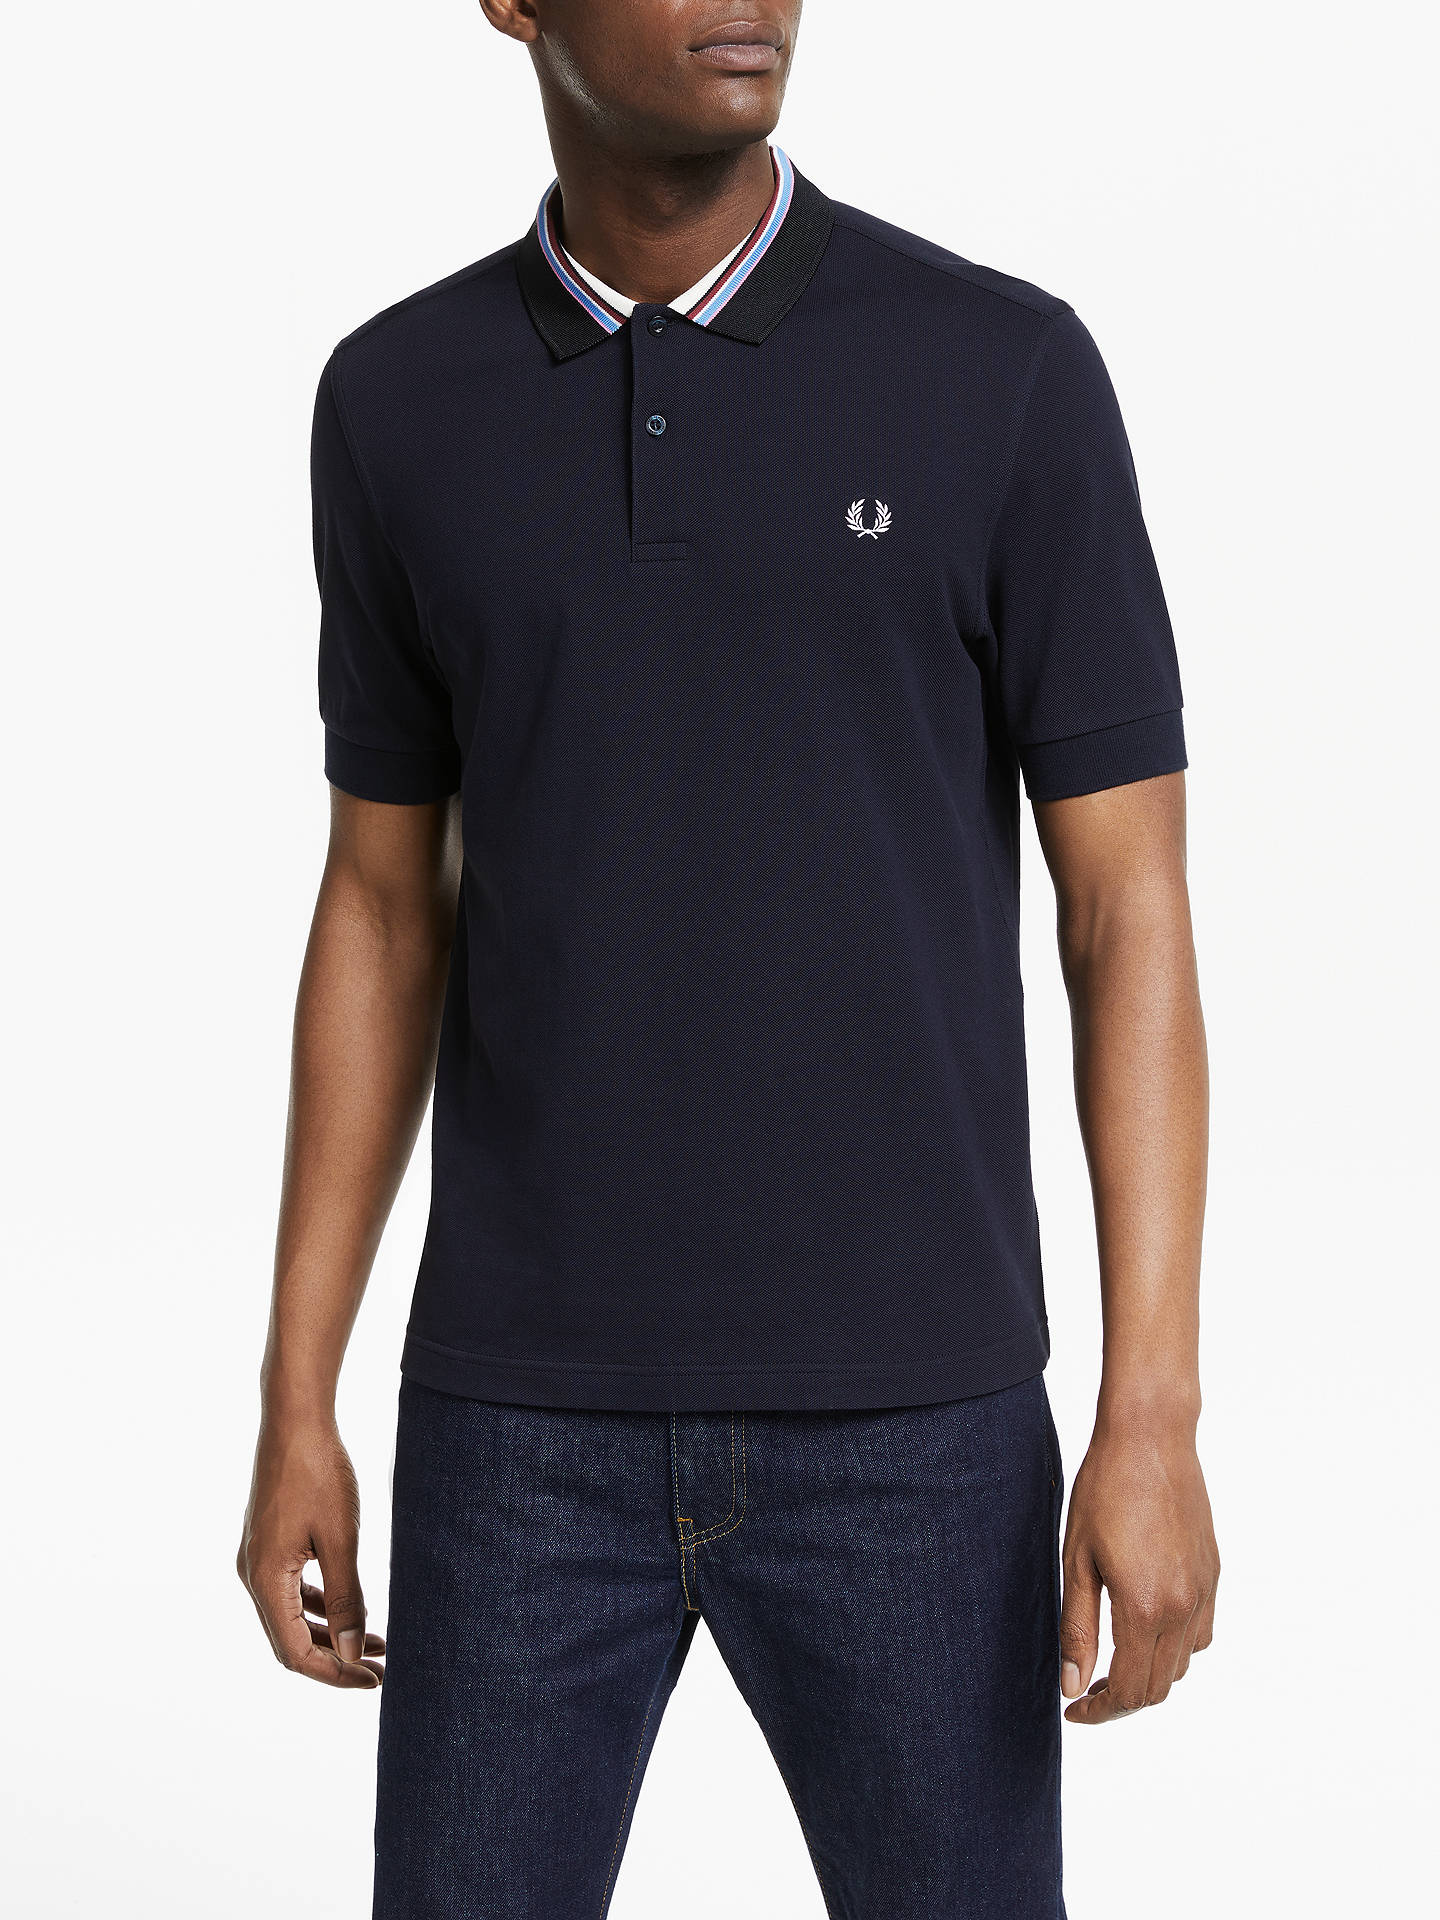 240b4d558 Fred Perry Stripe Tipped Pique Polo Shirt, Navy